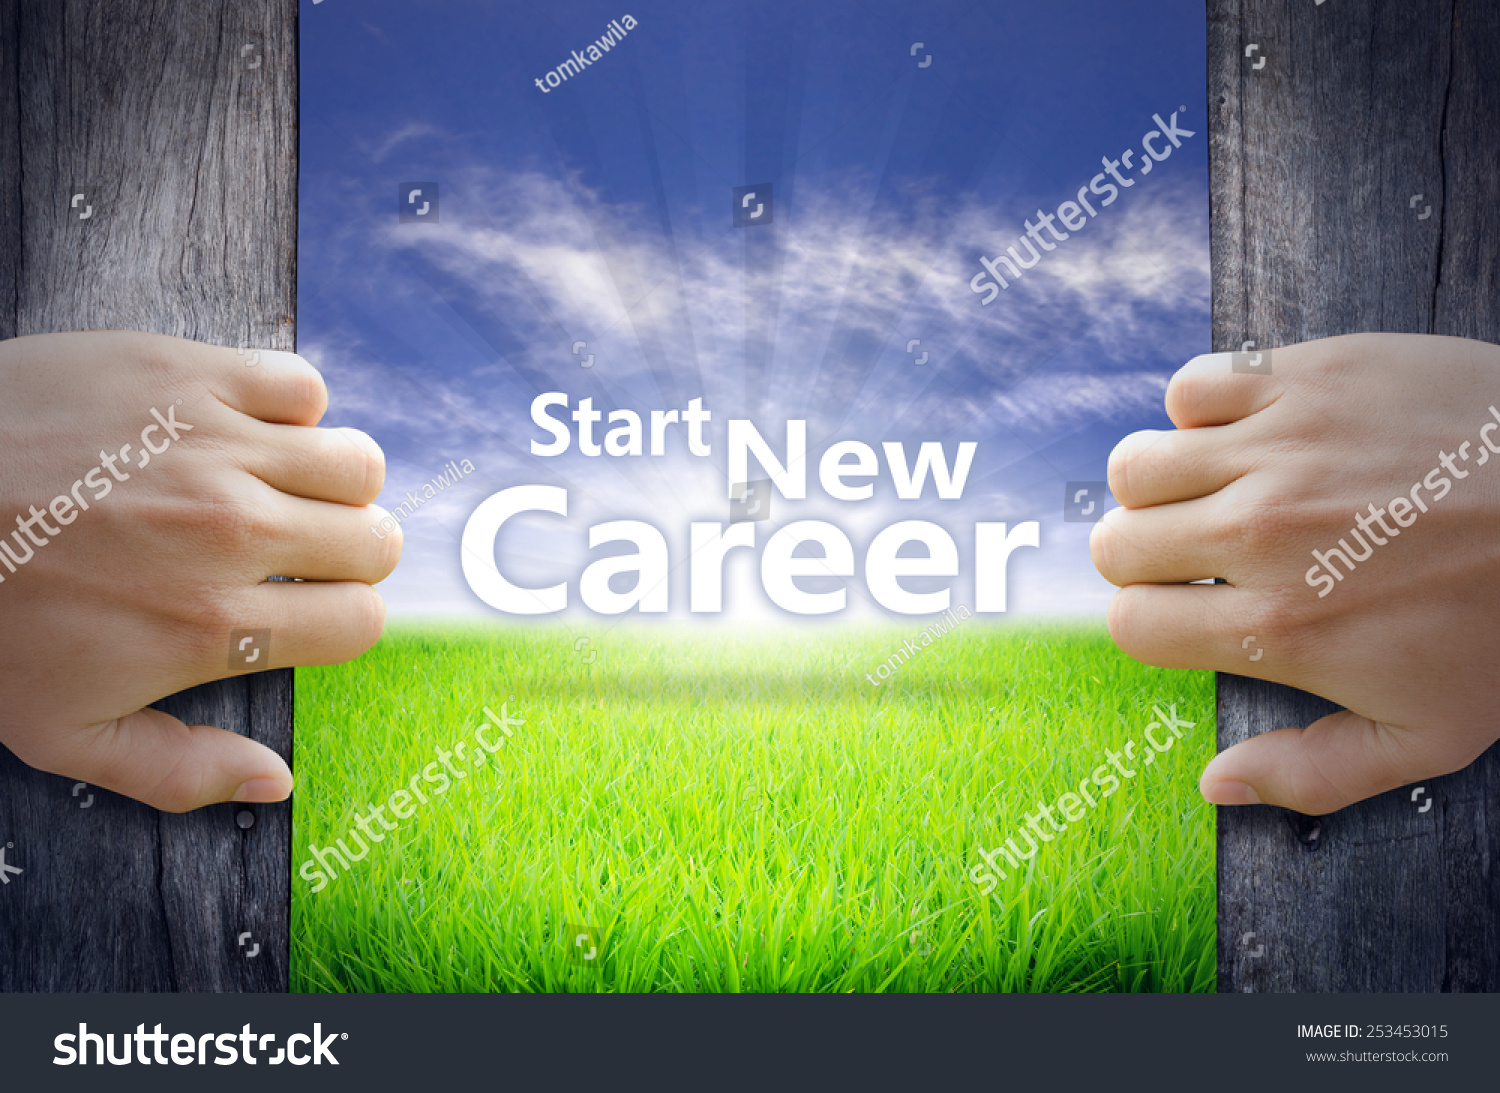 Start New Career Motivational Quotes Hands Stock Photo 253453015 ...